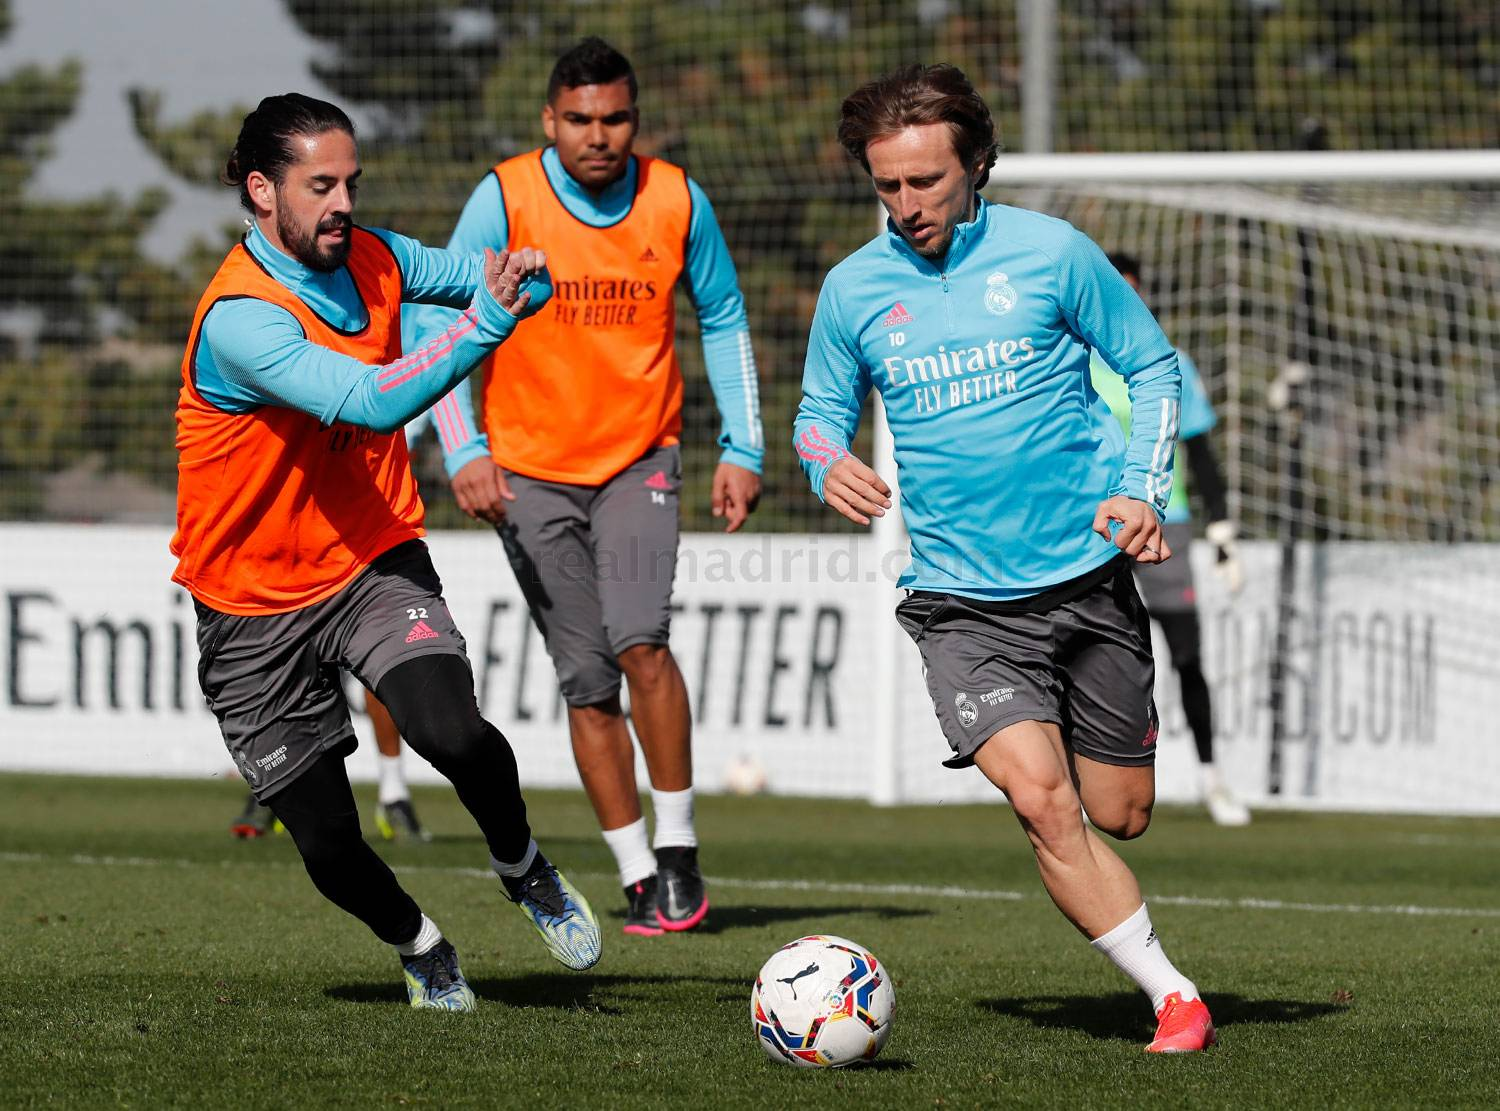 Real Madrid - Entrenamiento del Real Madrid  - 19-02-2021